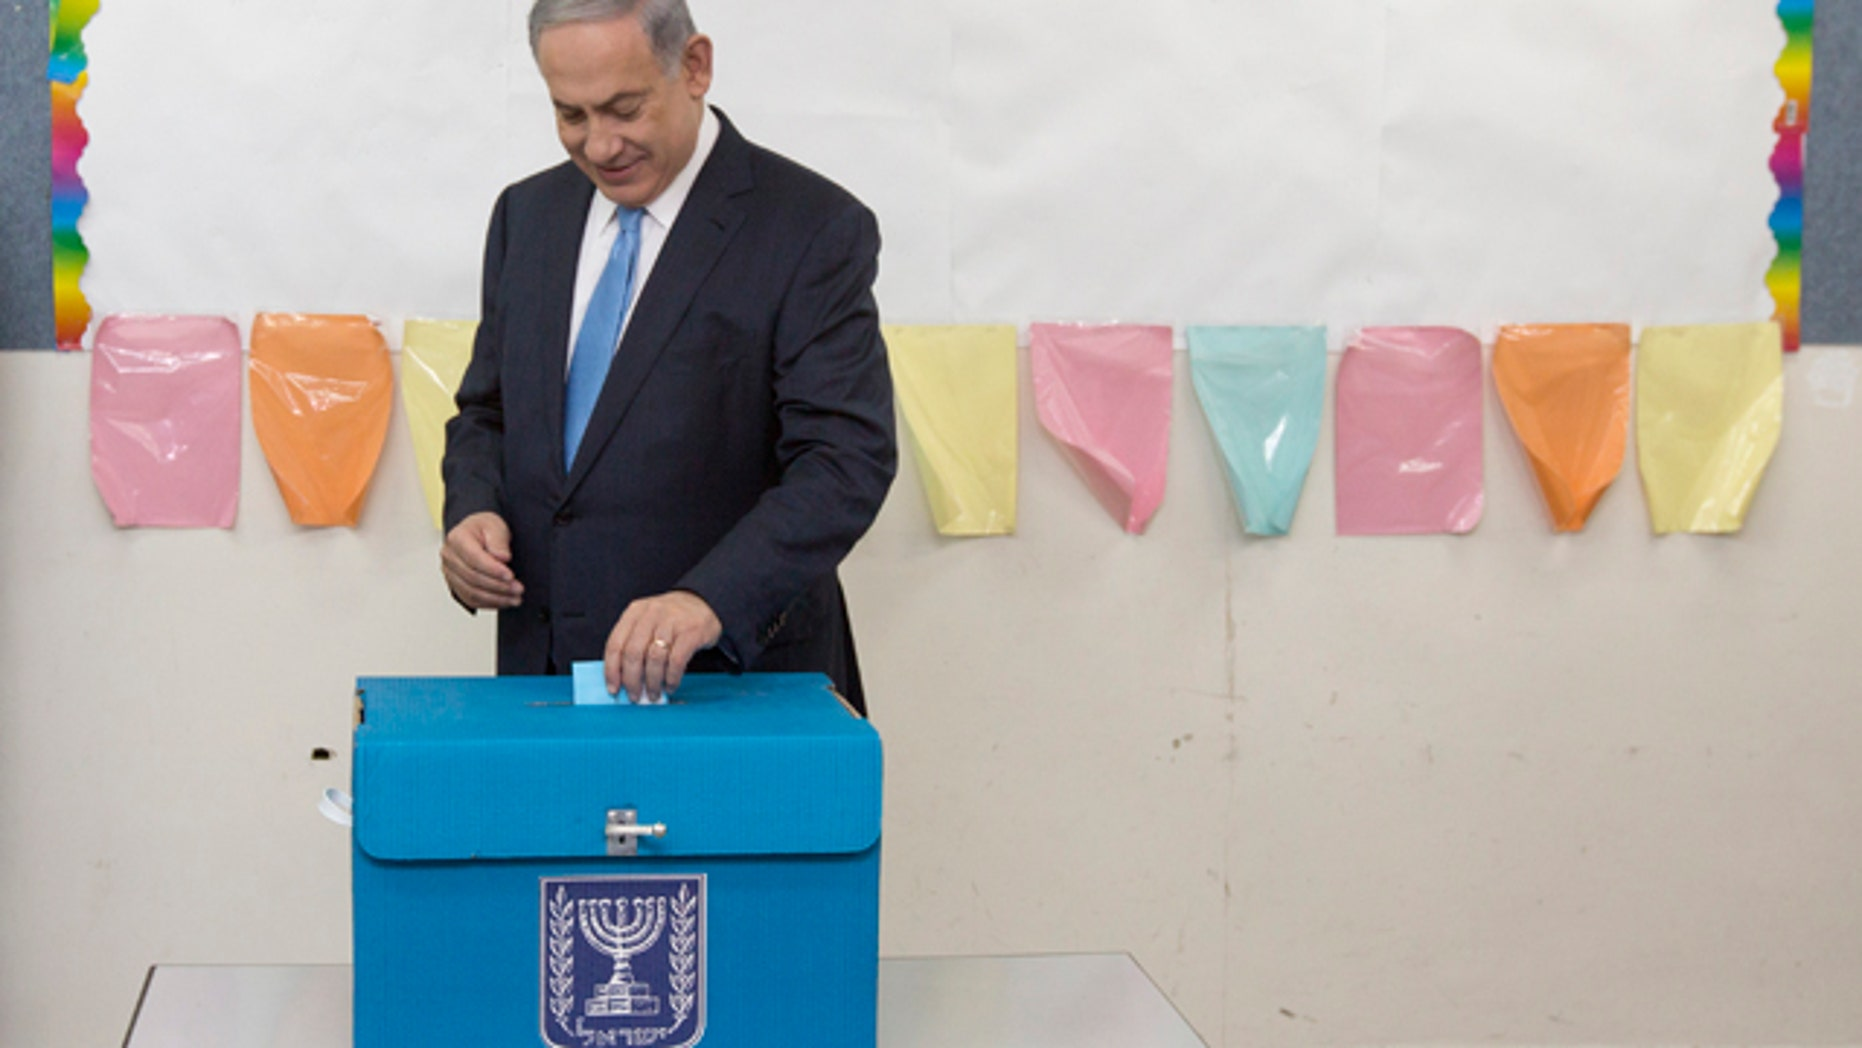 March 17, 2015: Israeli Prime Minister Benjamin Netanyahu casts his vote during Israel's parliamentary elections in Jerusalem. (AP Photo/Sebastian Scheiner, Pool)